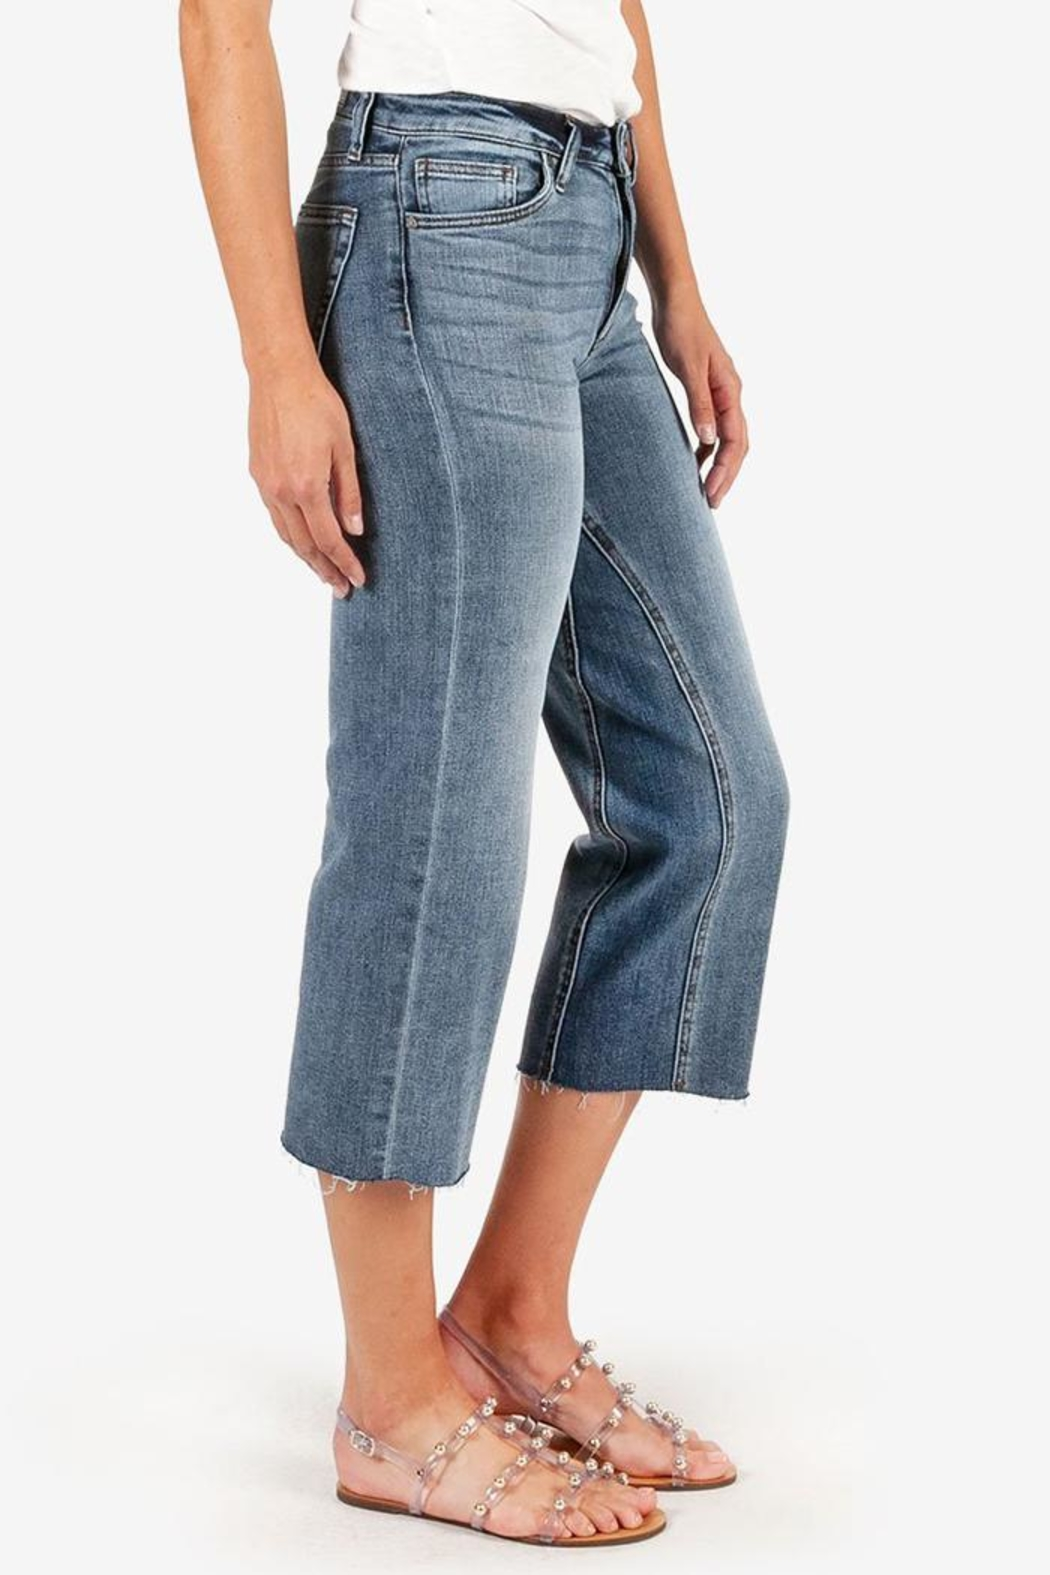 Kut from the Cloth Charlotte Culotte Jean - Front Full Image